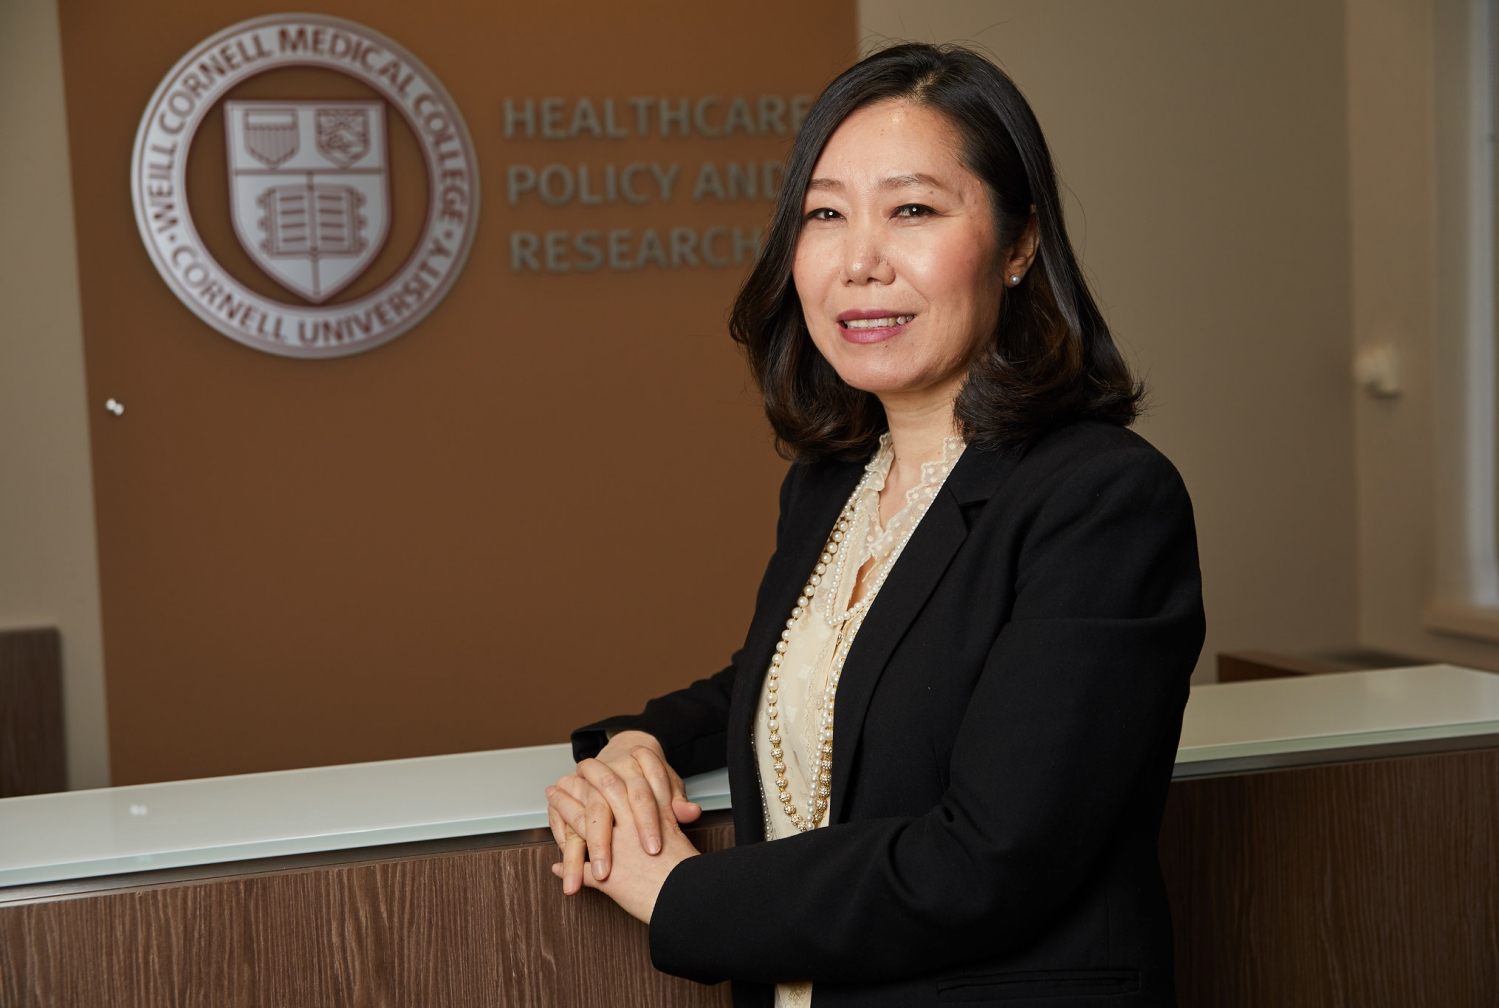 Dr. Hye-Young Jung